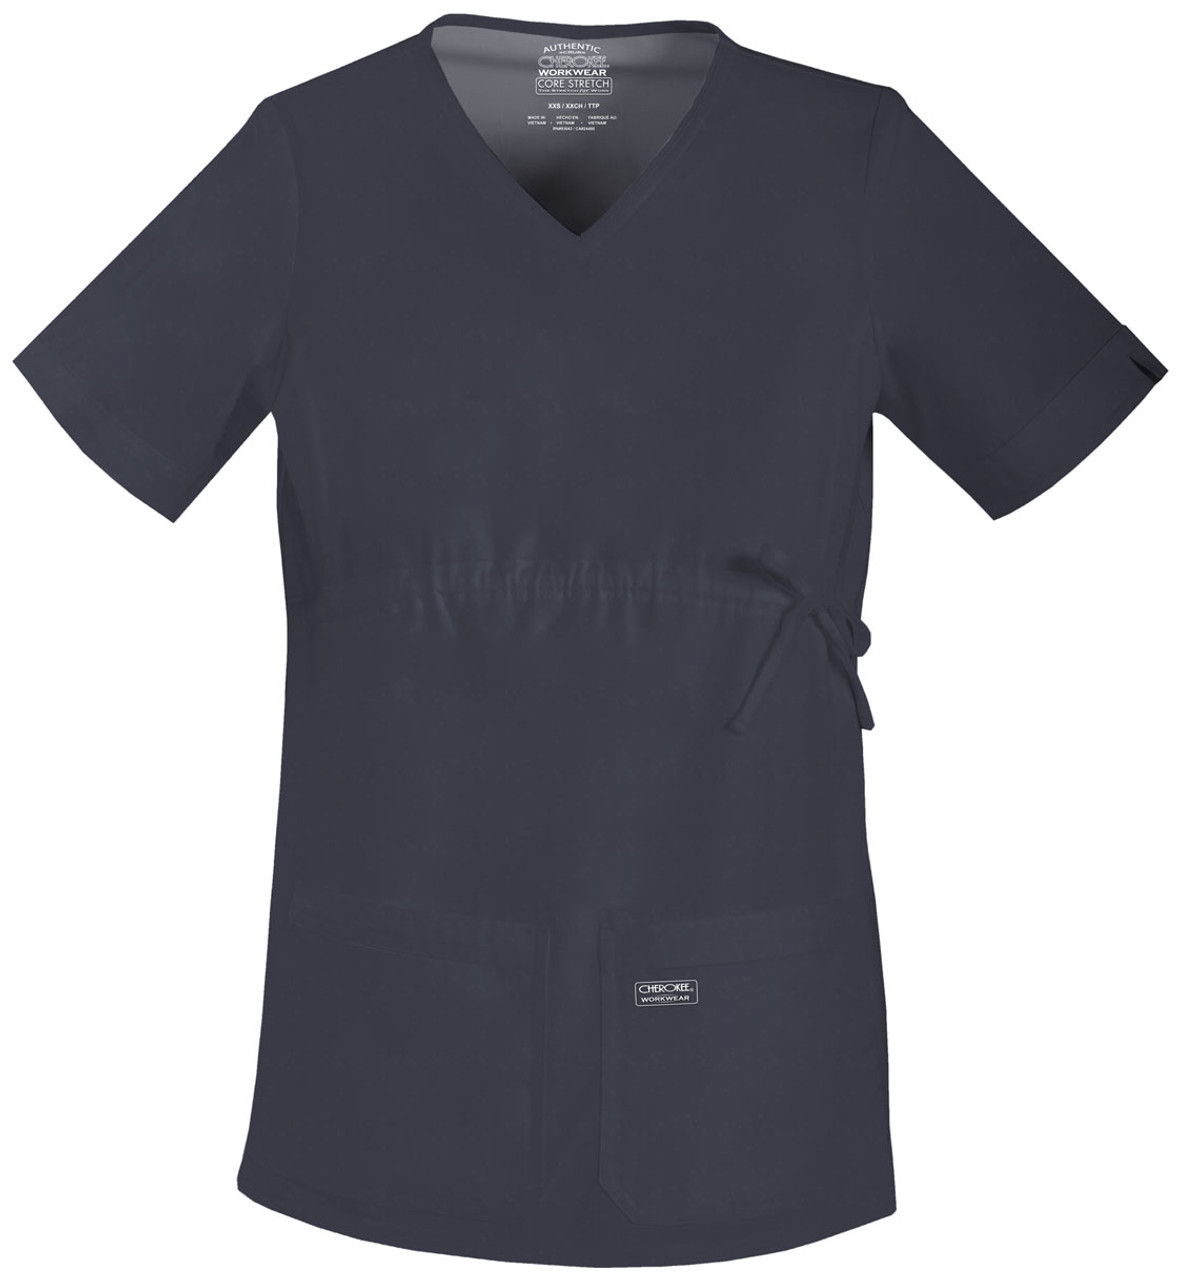 d530a69958a (4708) Cherokee Workwear Scrubs Core Stretch - Maternity V-Neck Knit Panel  Top ...